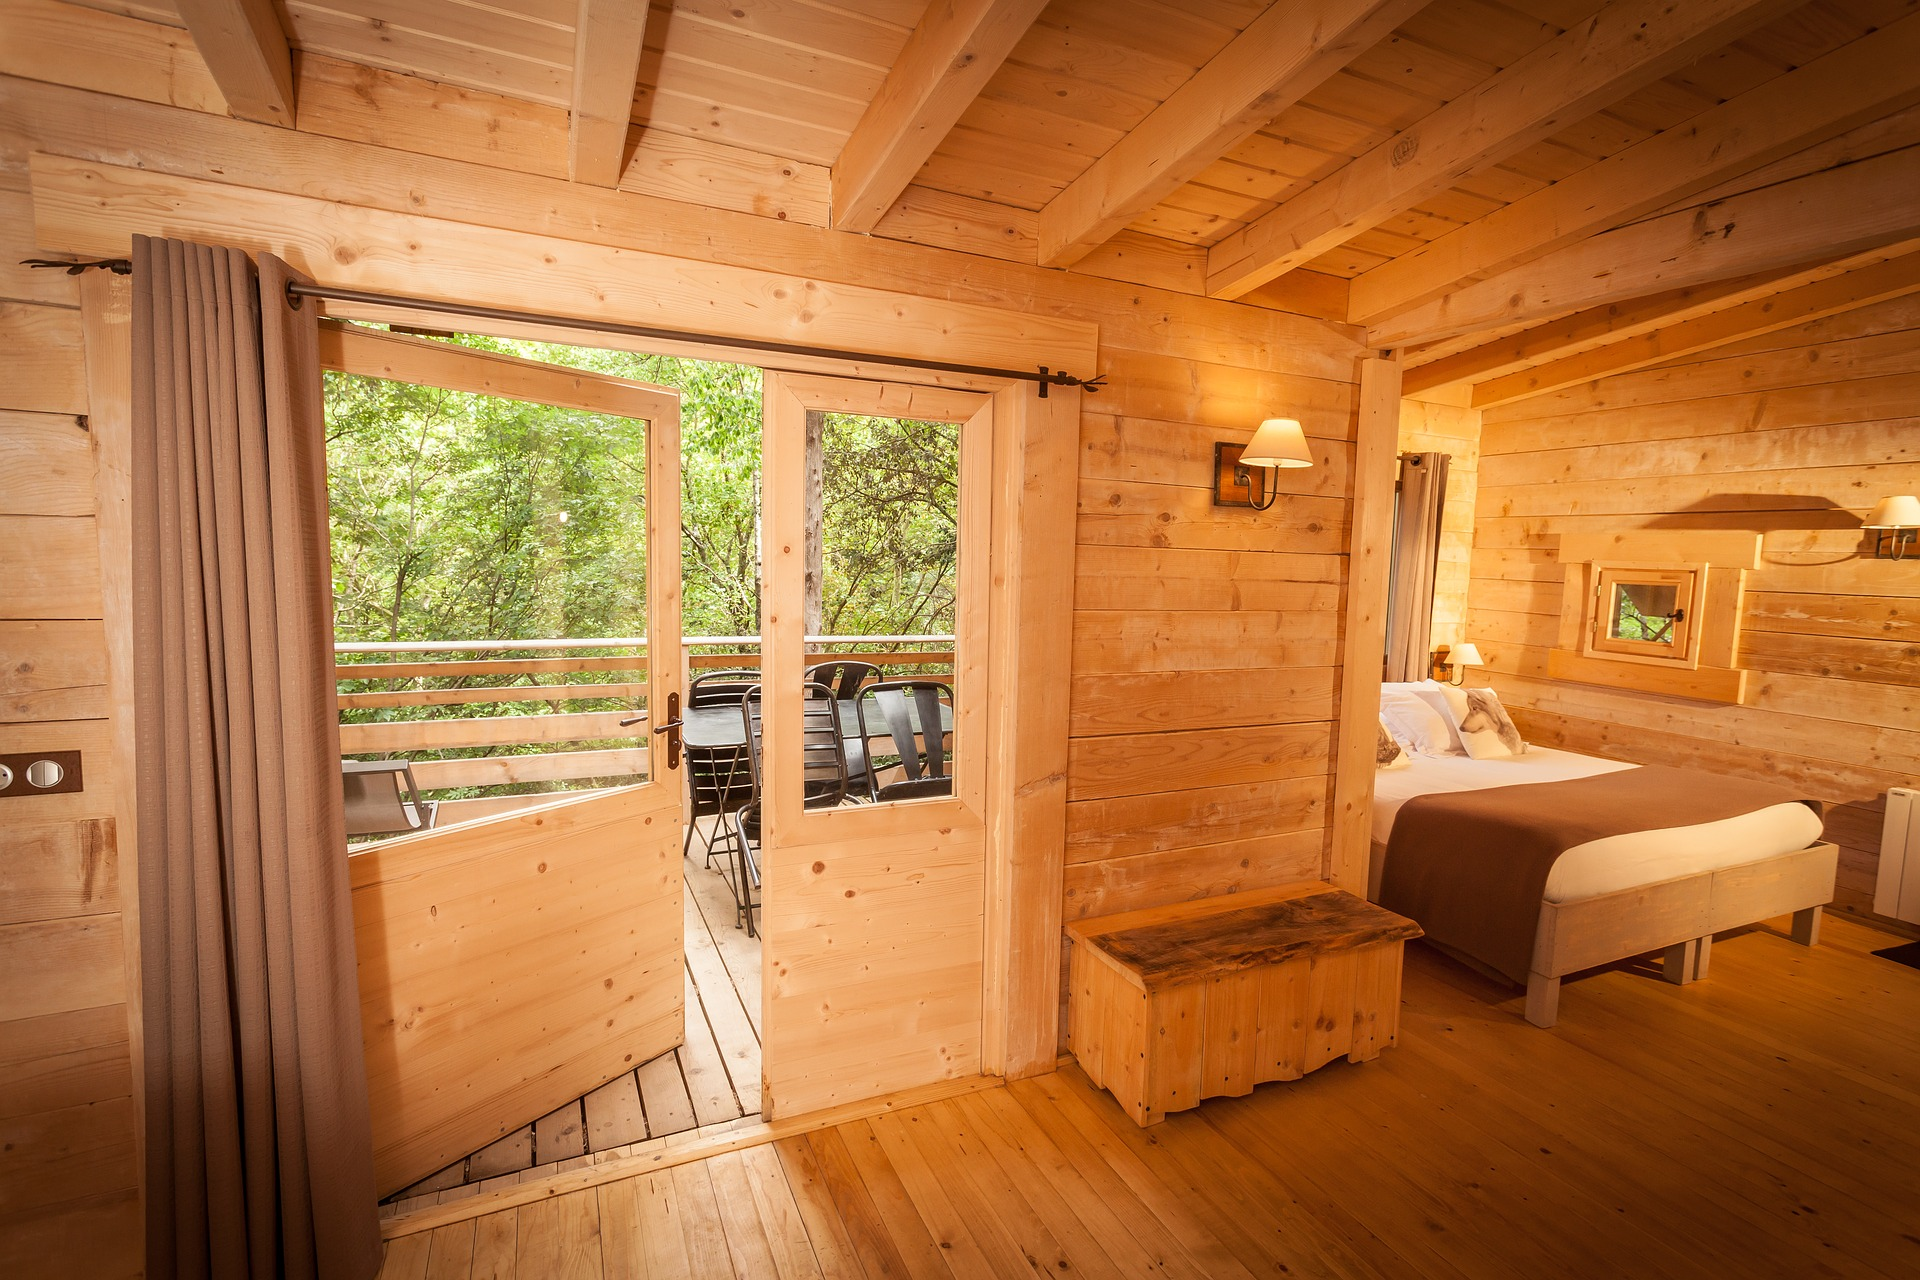 cabins-in-the-woods-1644338_1920